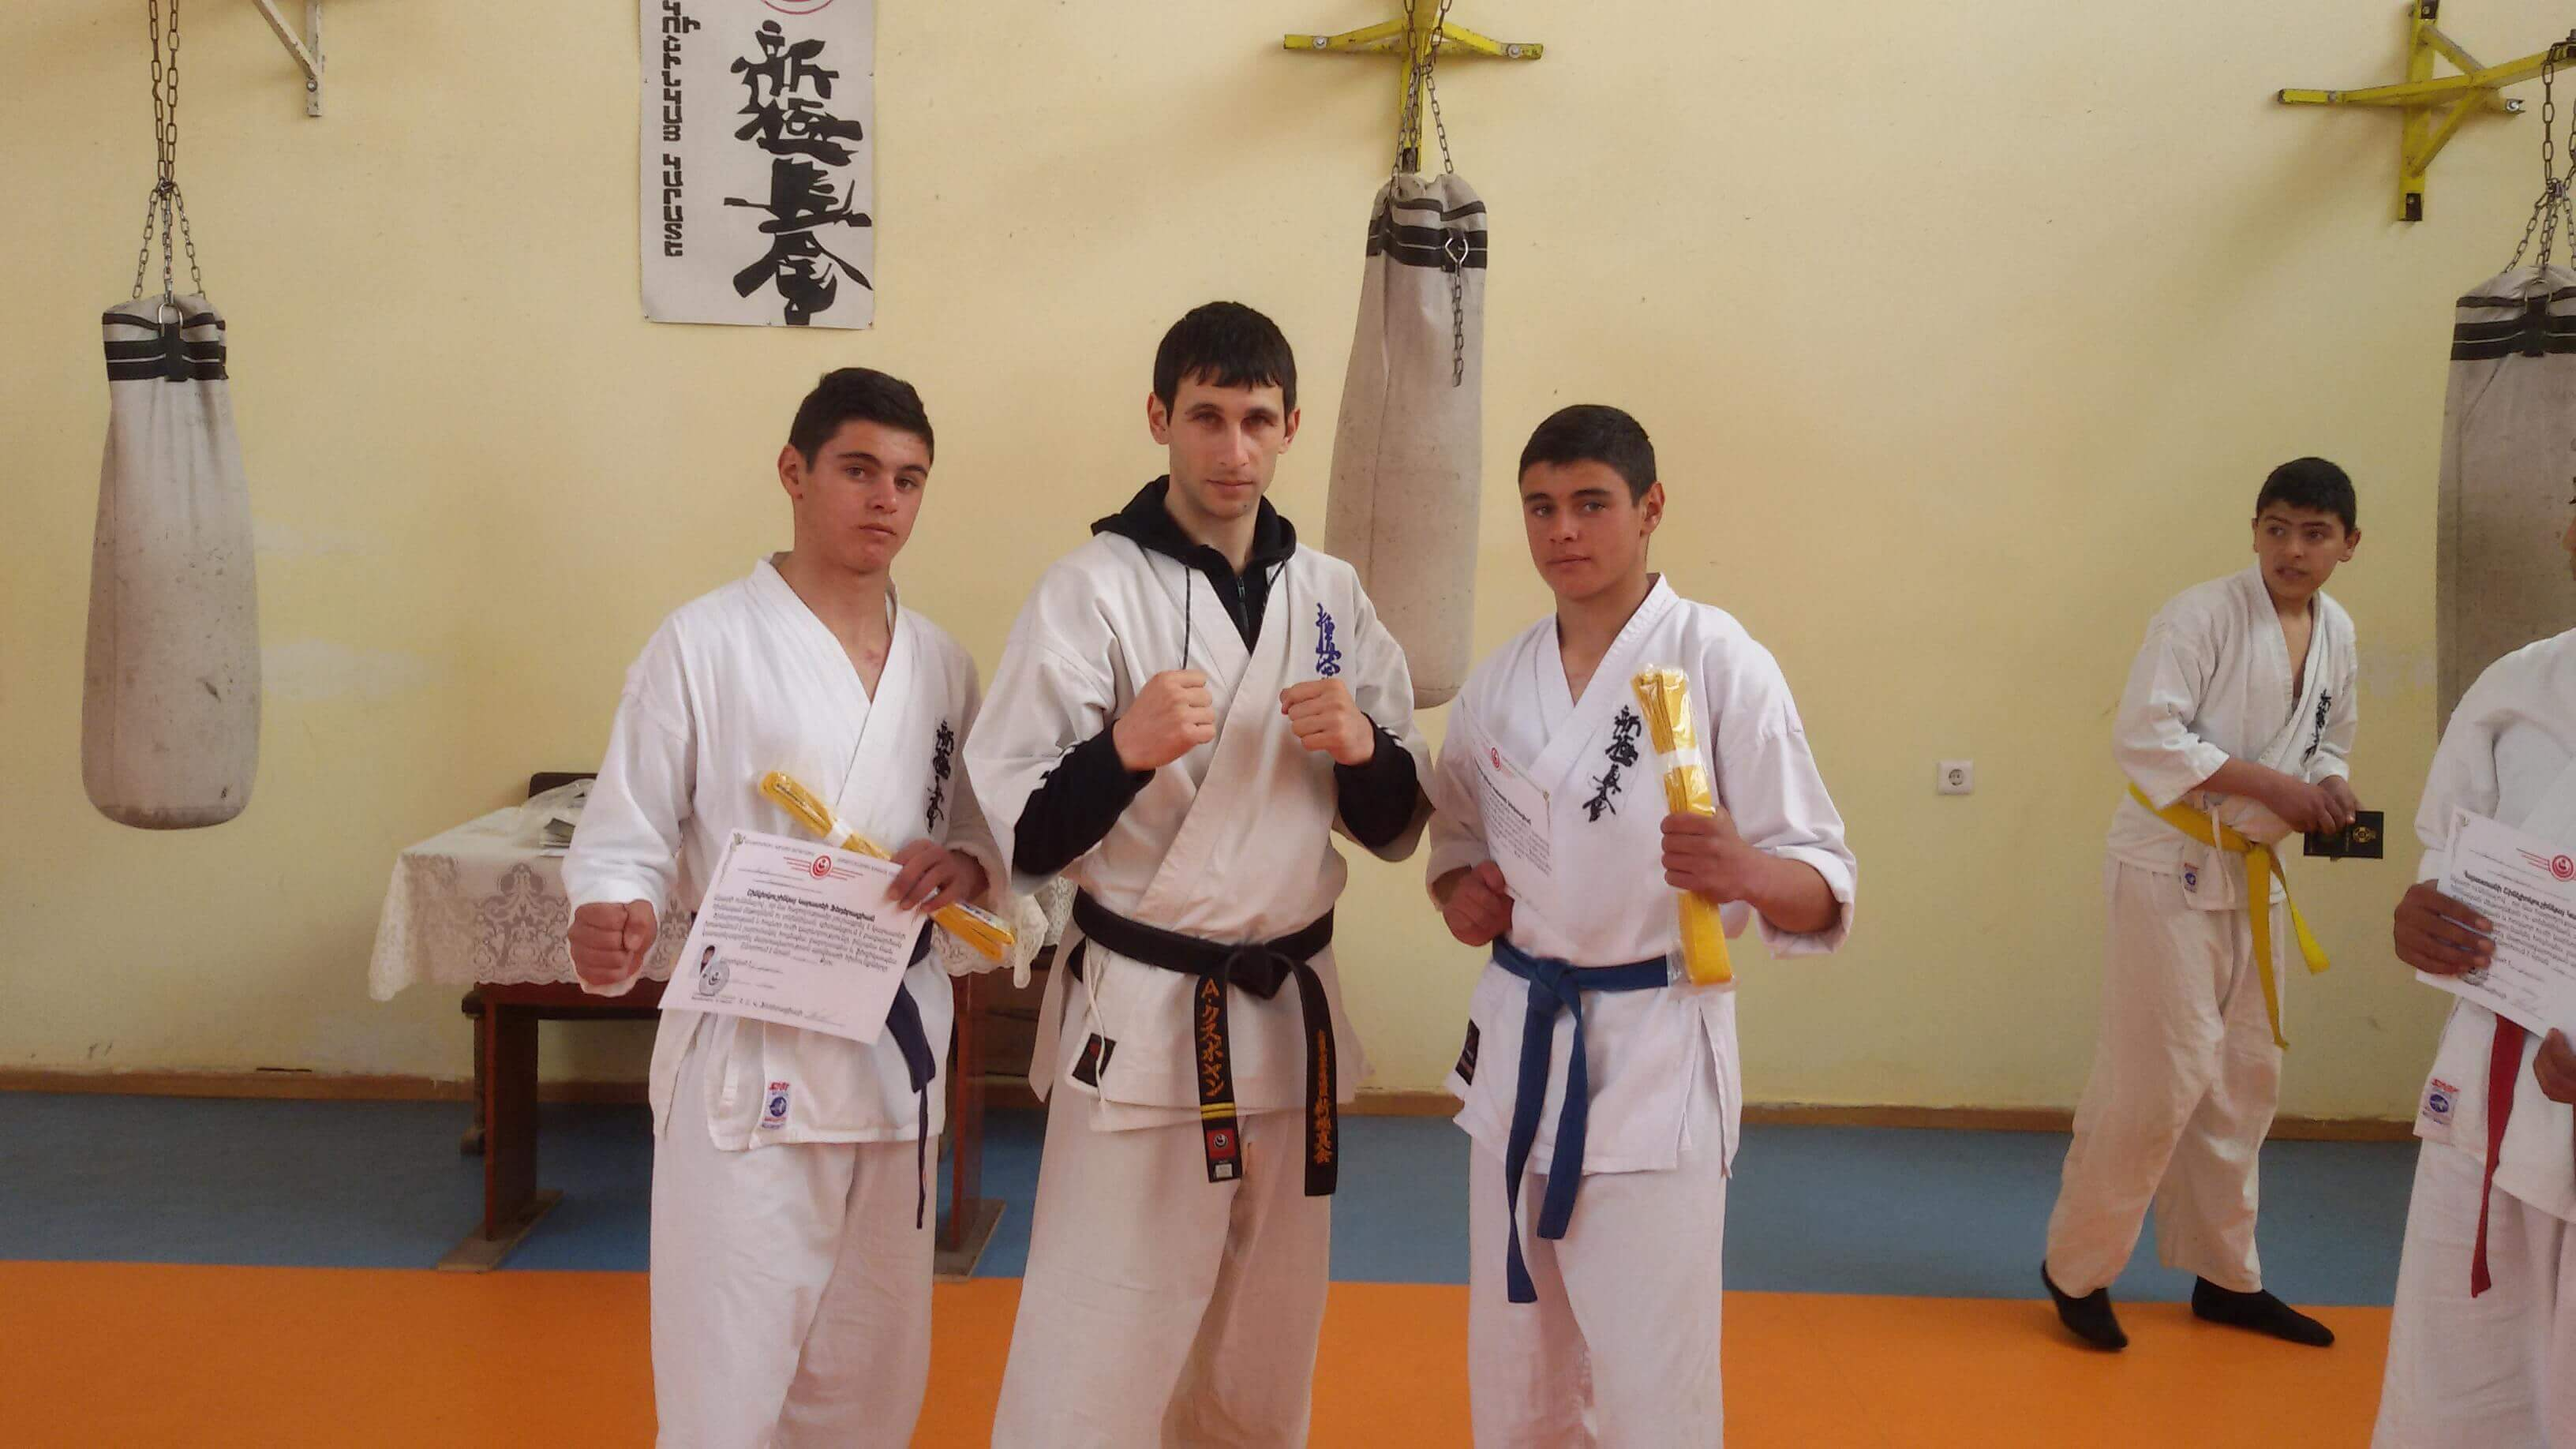 Federation of Shinkyokushin Karate of Armenia - Training is Vardenis